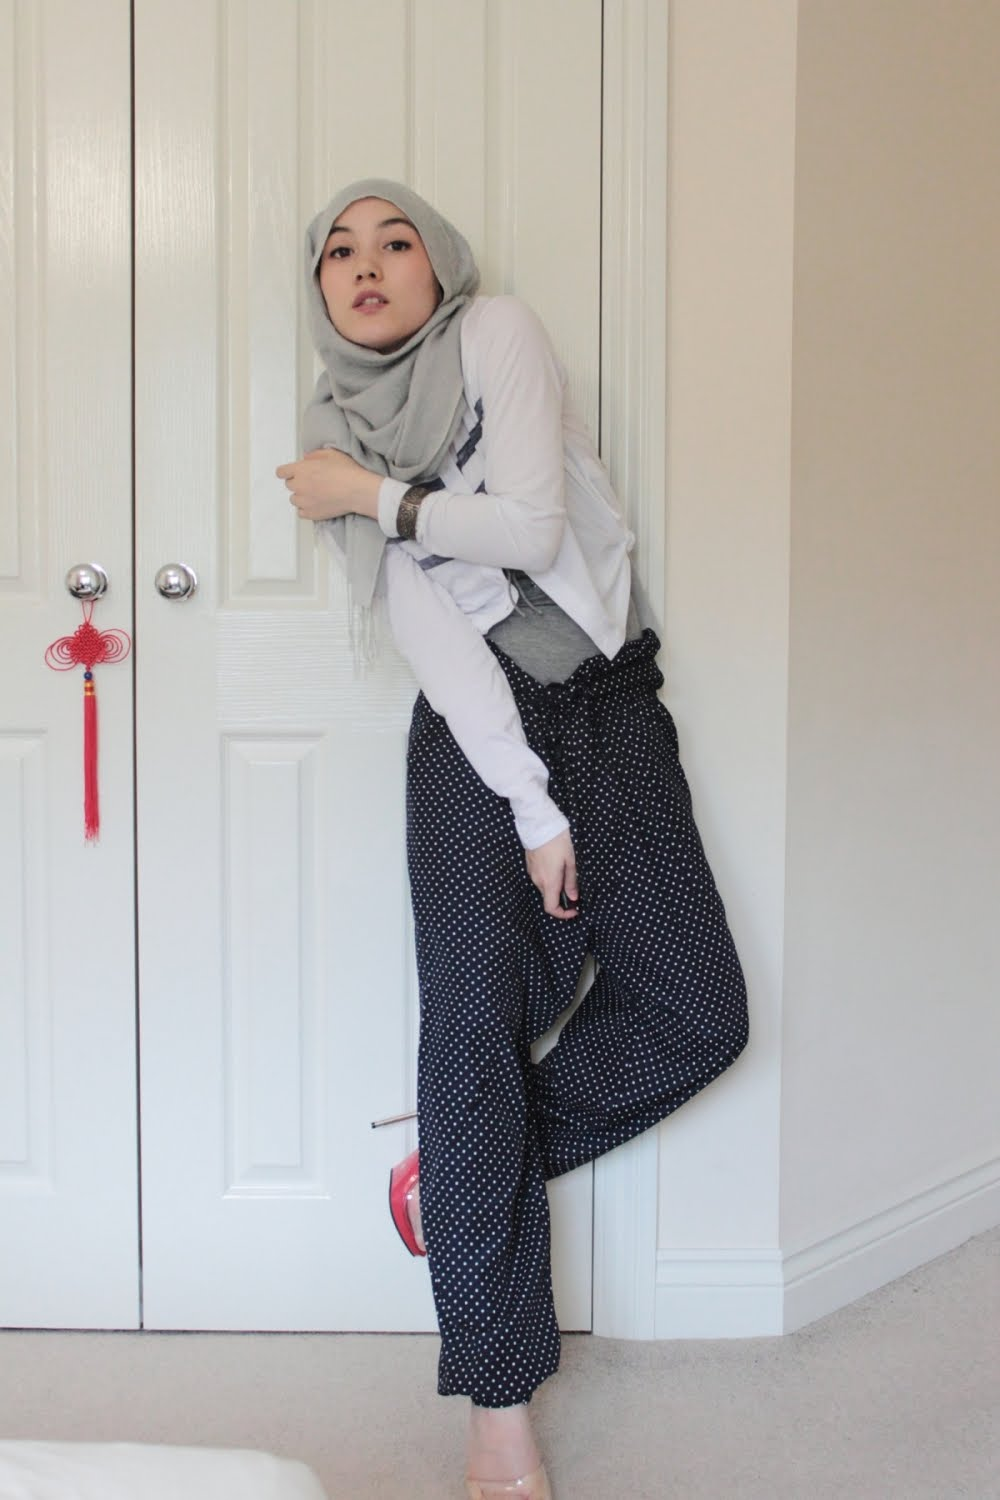 I heart her so much hana tajima simpson Hijab fashion style hana tajima